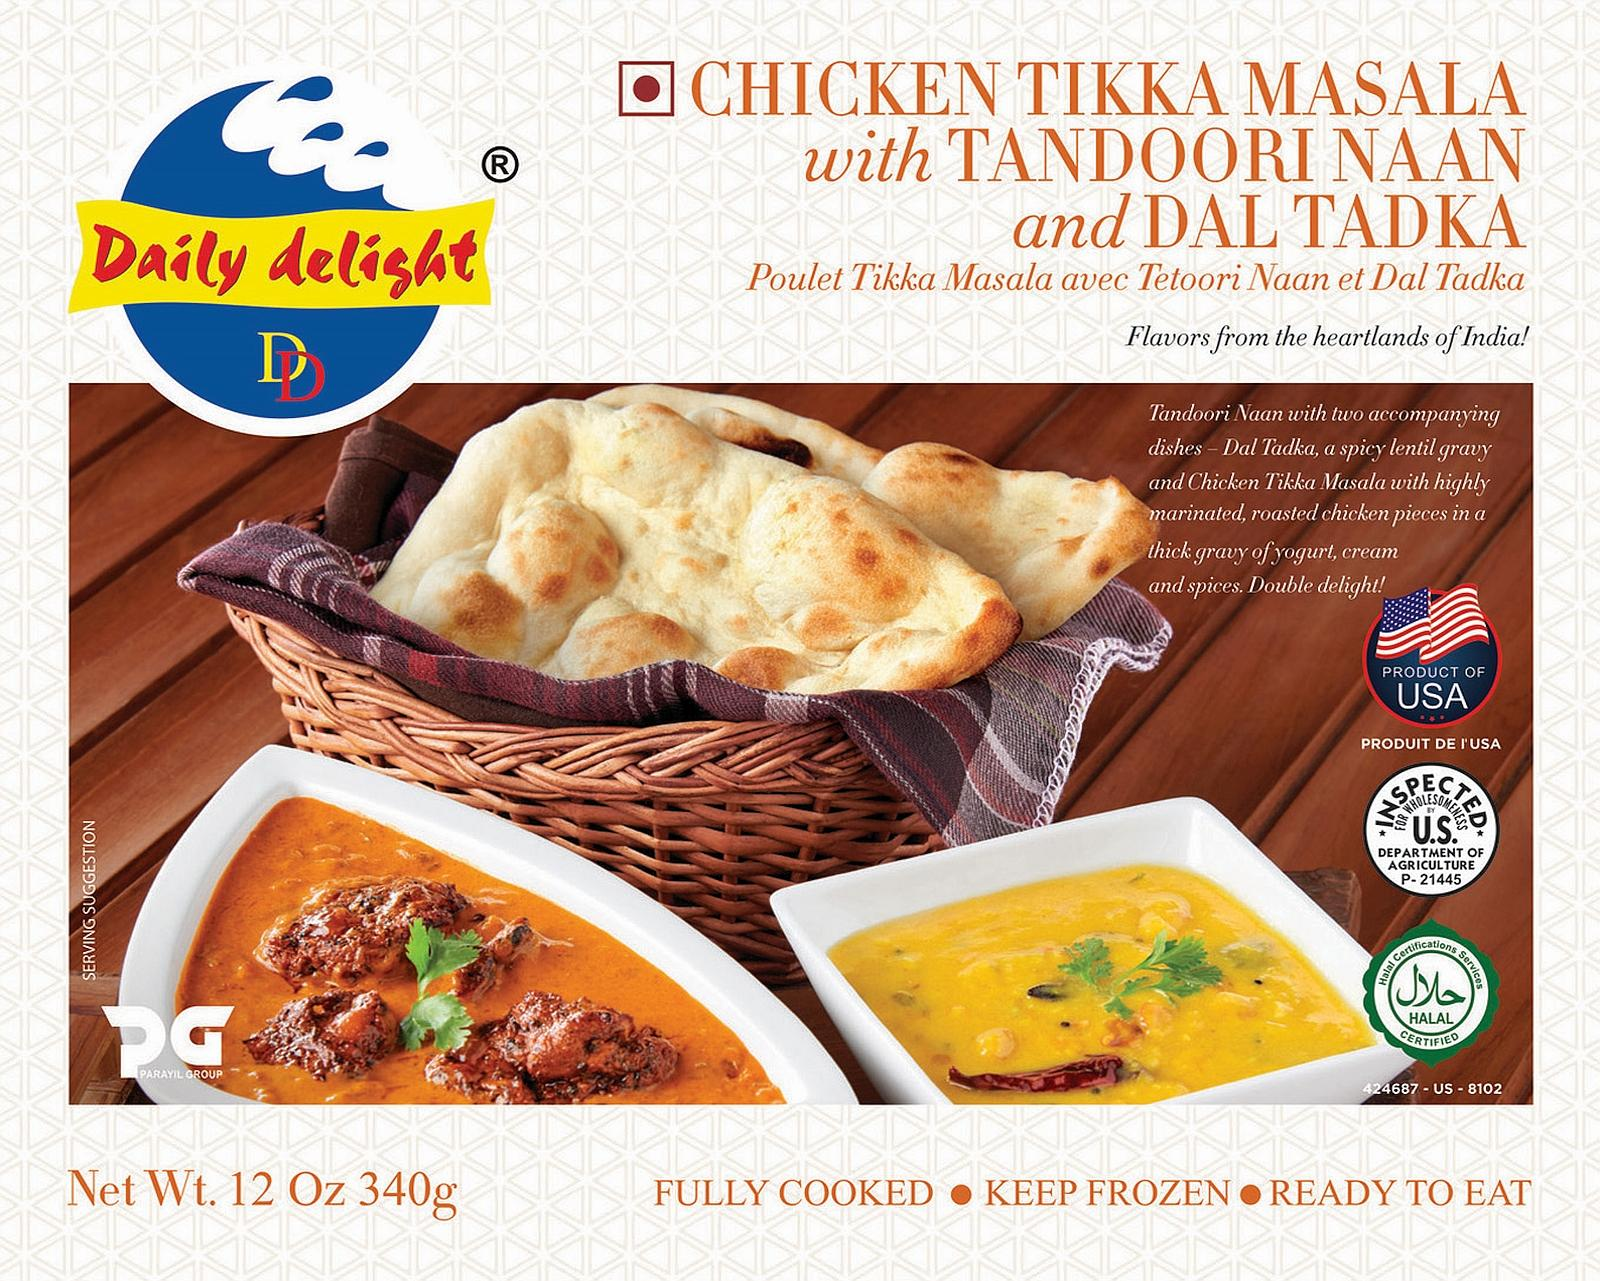 Daily Delight Chicken Tikka Masala with Tandoori Naan and Dal Tadka